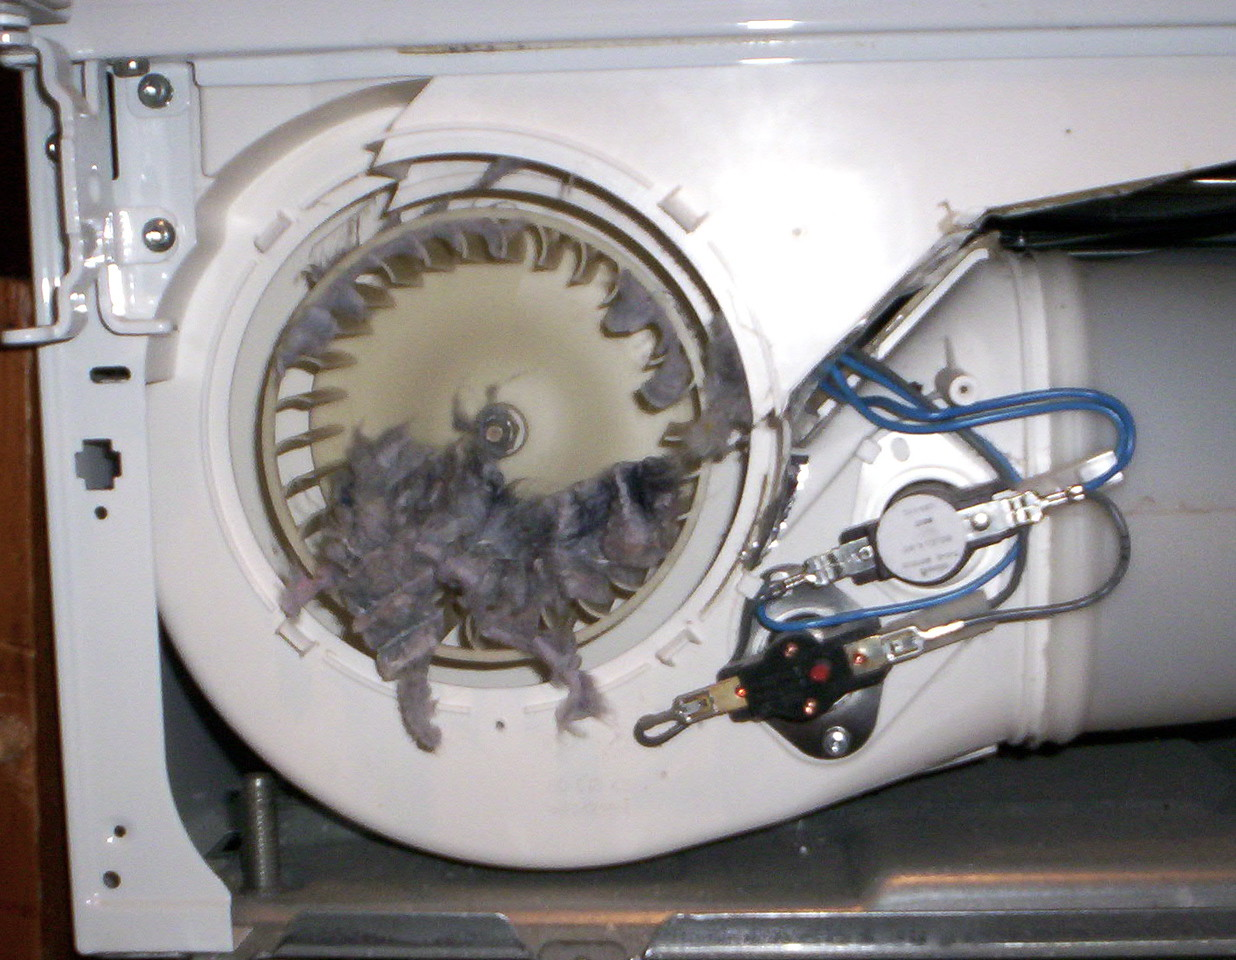 Lint Rat Caught in Dryer Blower